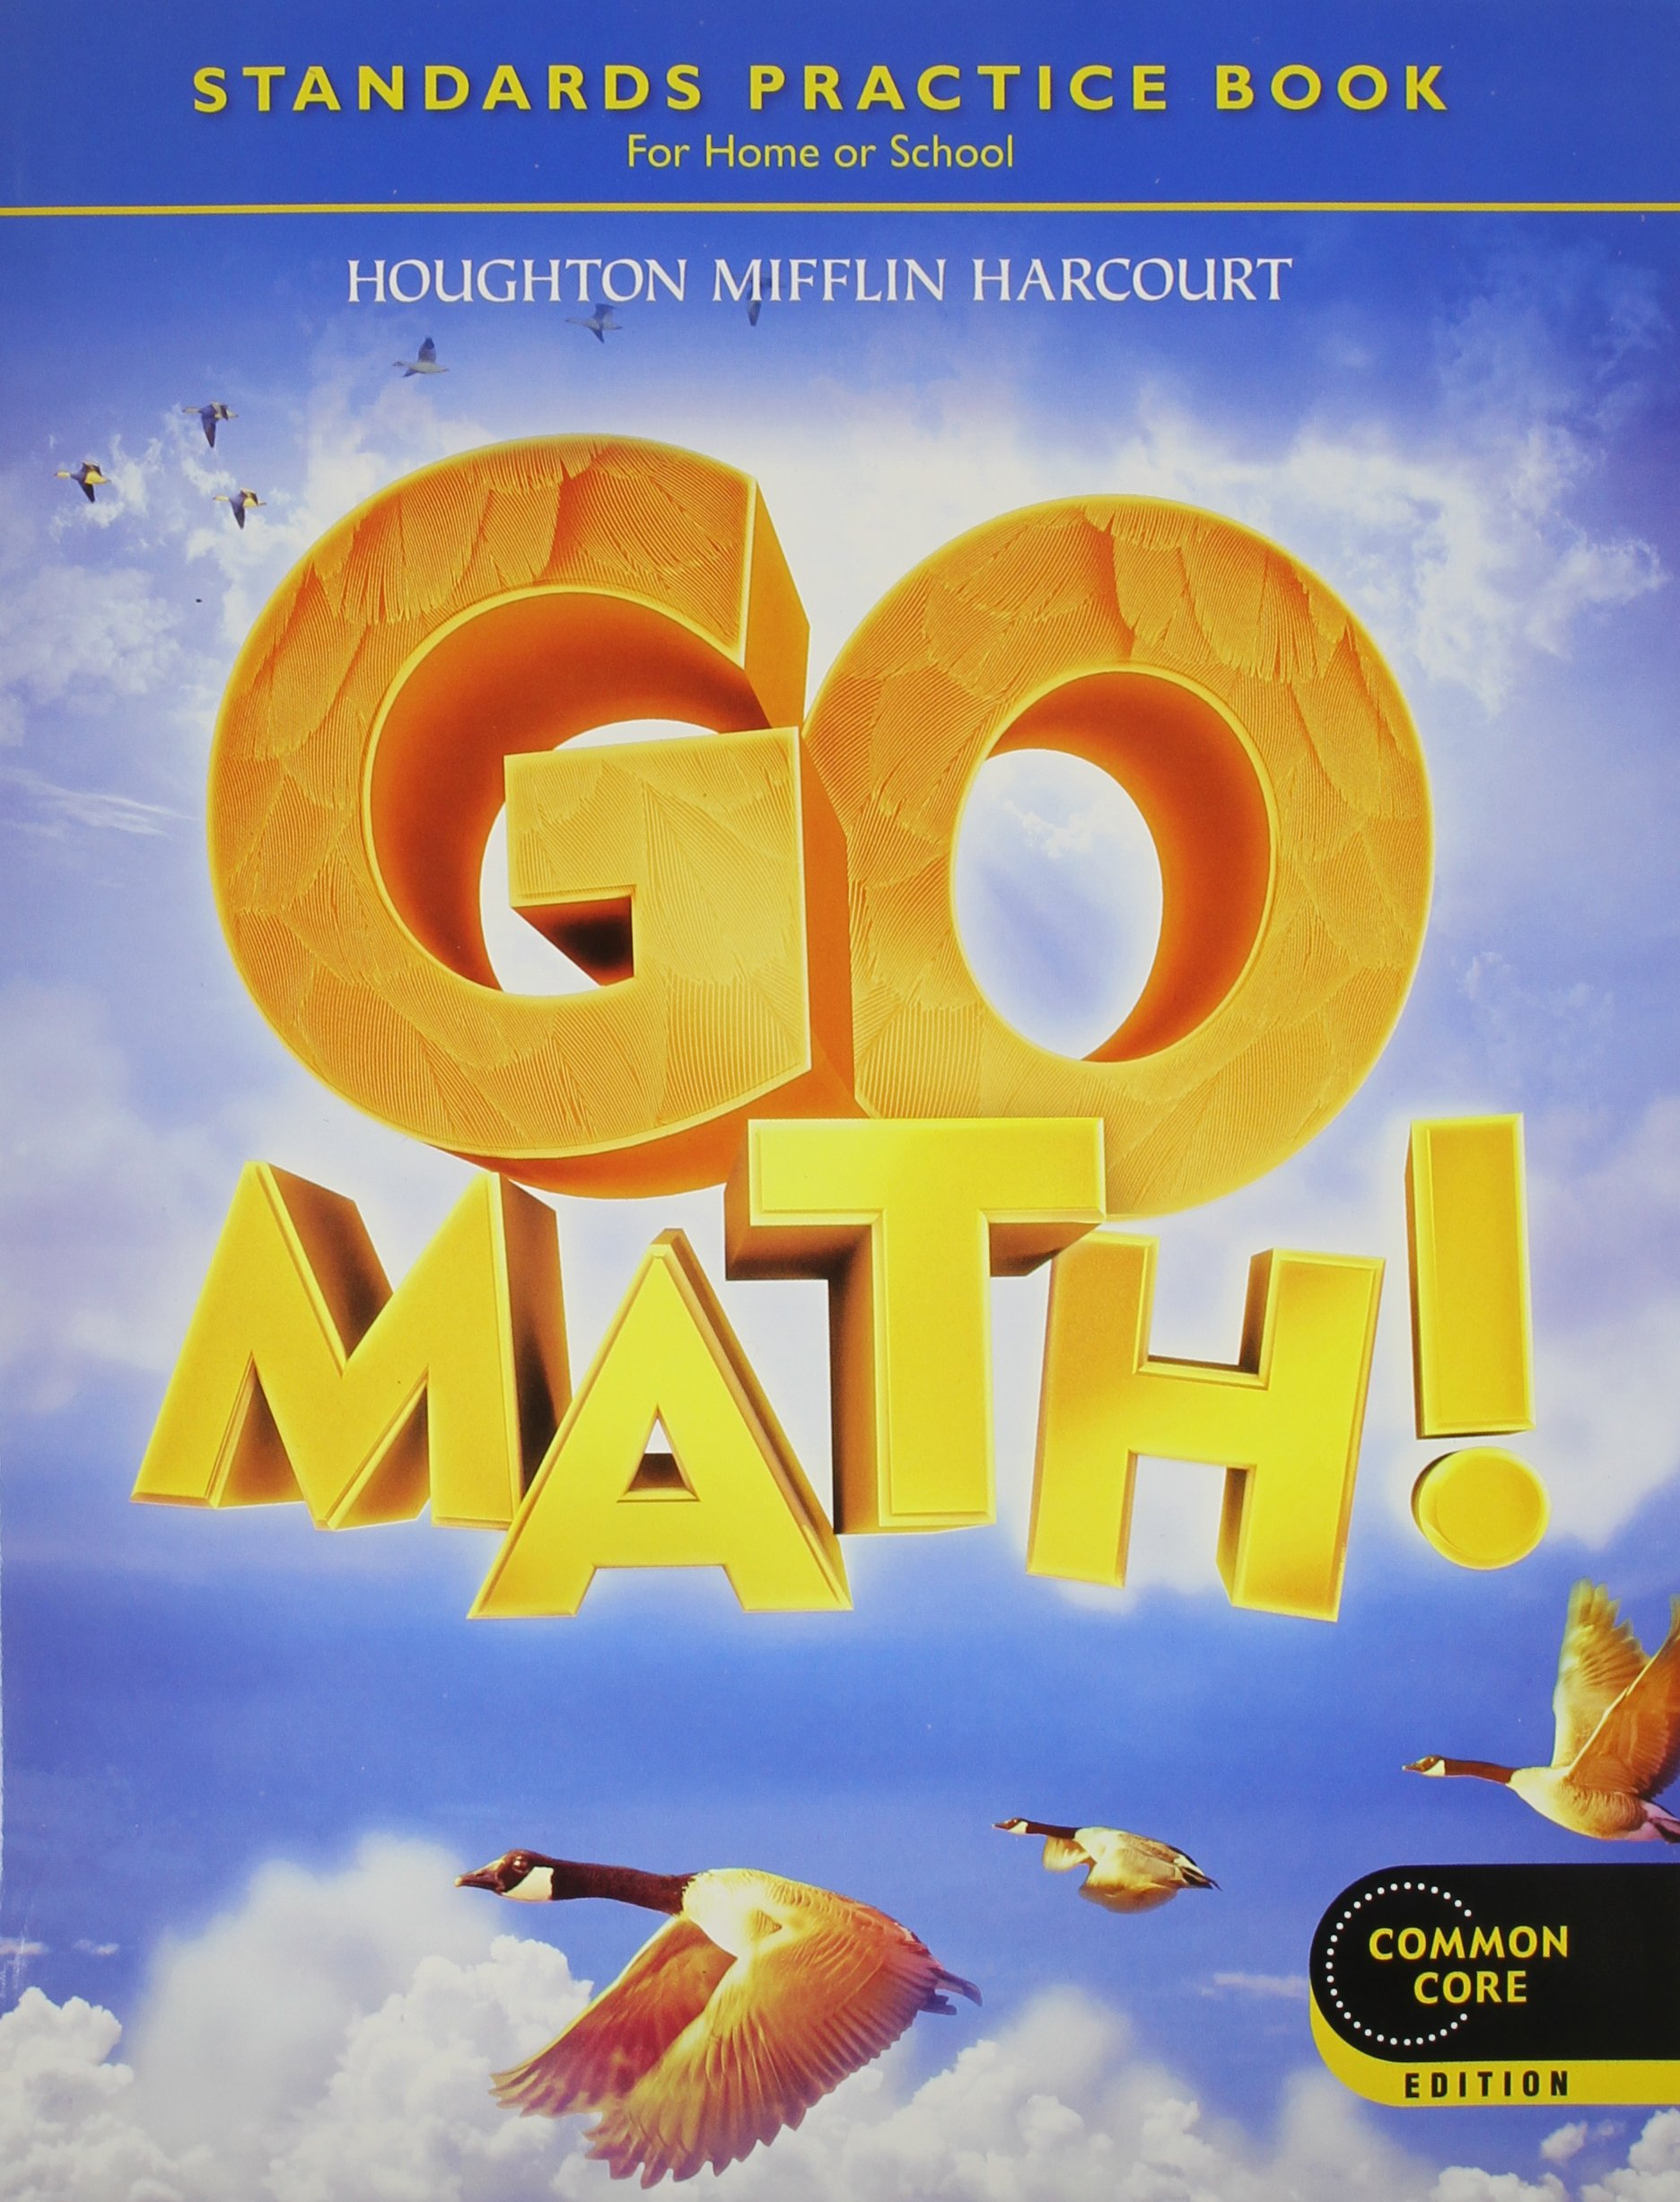 Worksheets Houghton Mifflin Math Worksheets buy go math student practice book grade 4 online at low prices in india reviews r